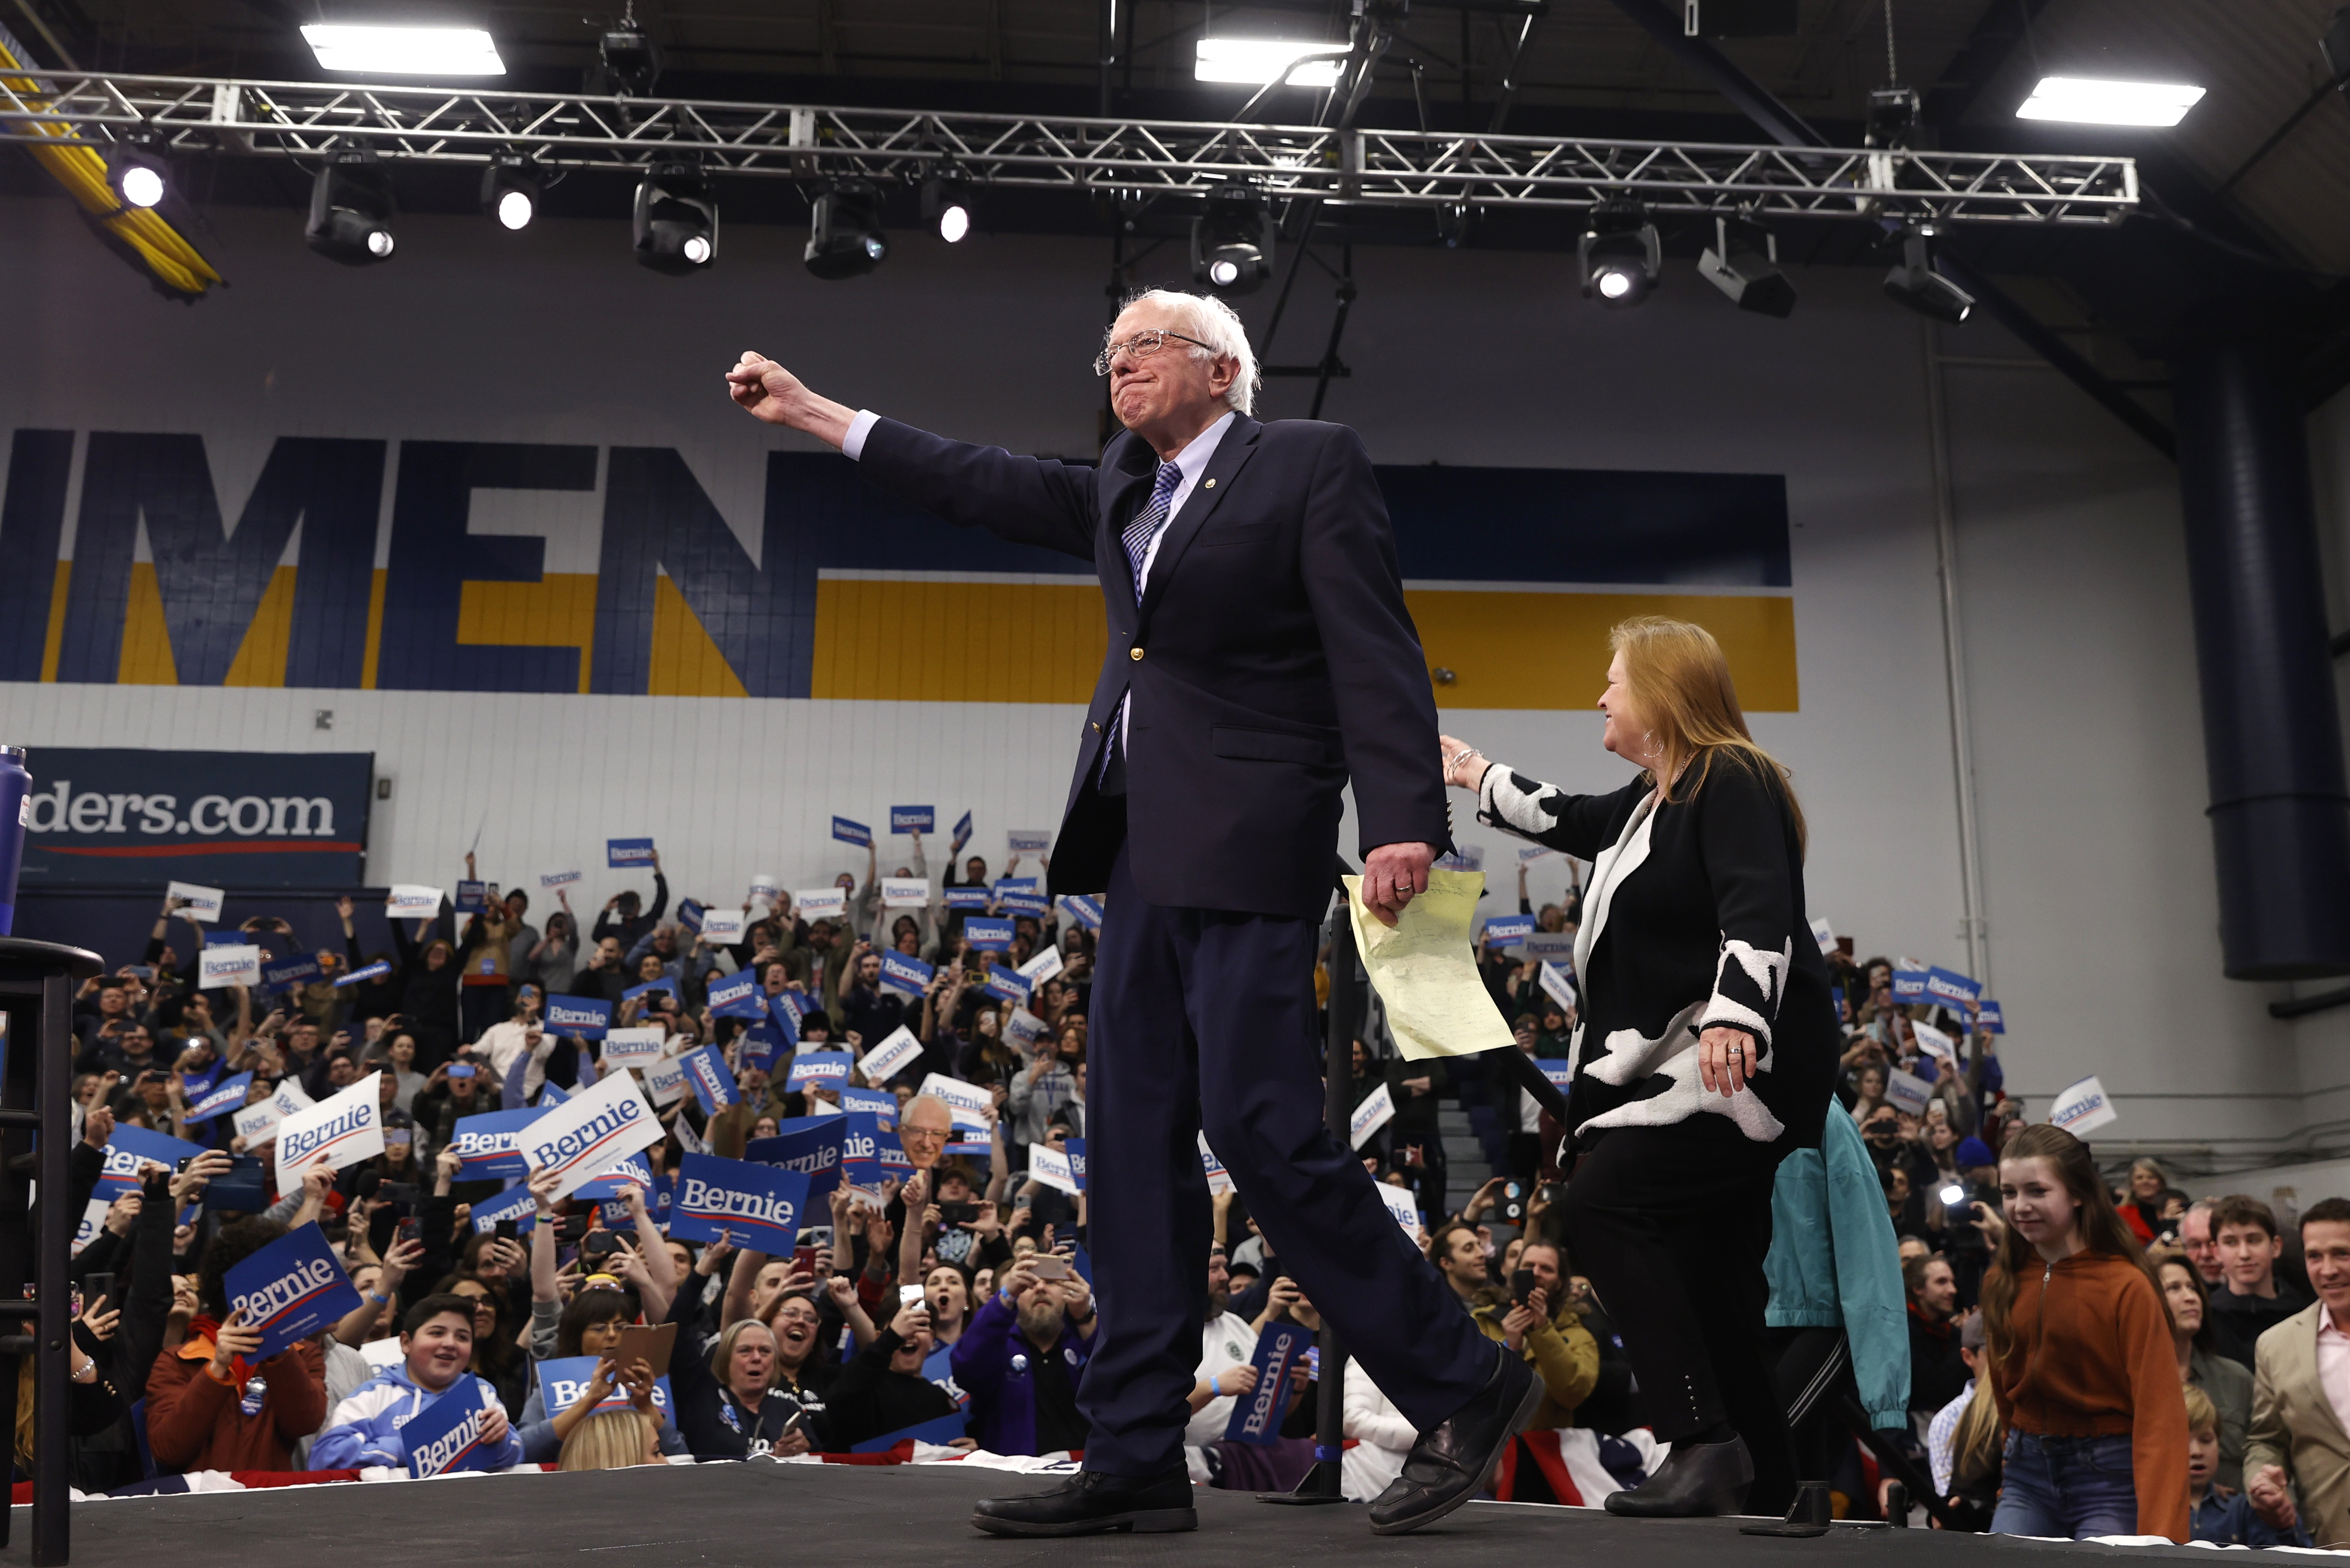 Democratic U.S. presidential candidate Senator Bernie Sanders pumps his fist and is accompanied by his wife Jane O'Meara Sanders as he arrives to speak at his New Hampshire primary night rally in Manchester, N.H., U.S., February 11, 2020. REUTERS/Mike Segar - HP1EG2C0E5I9E